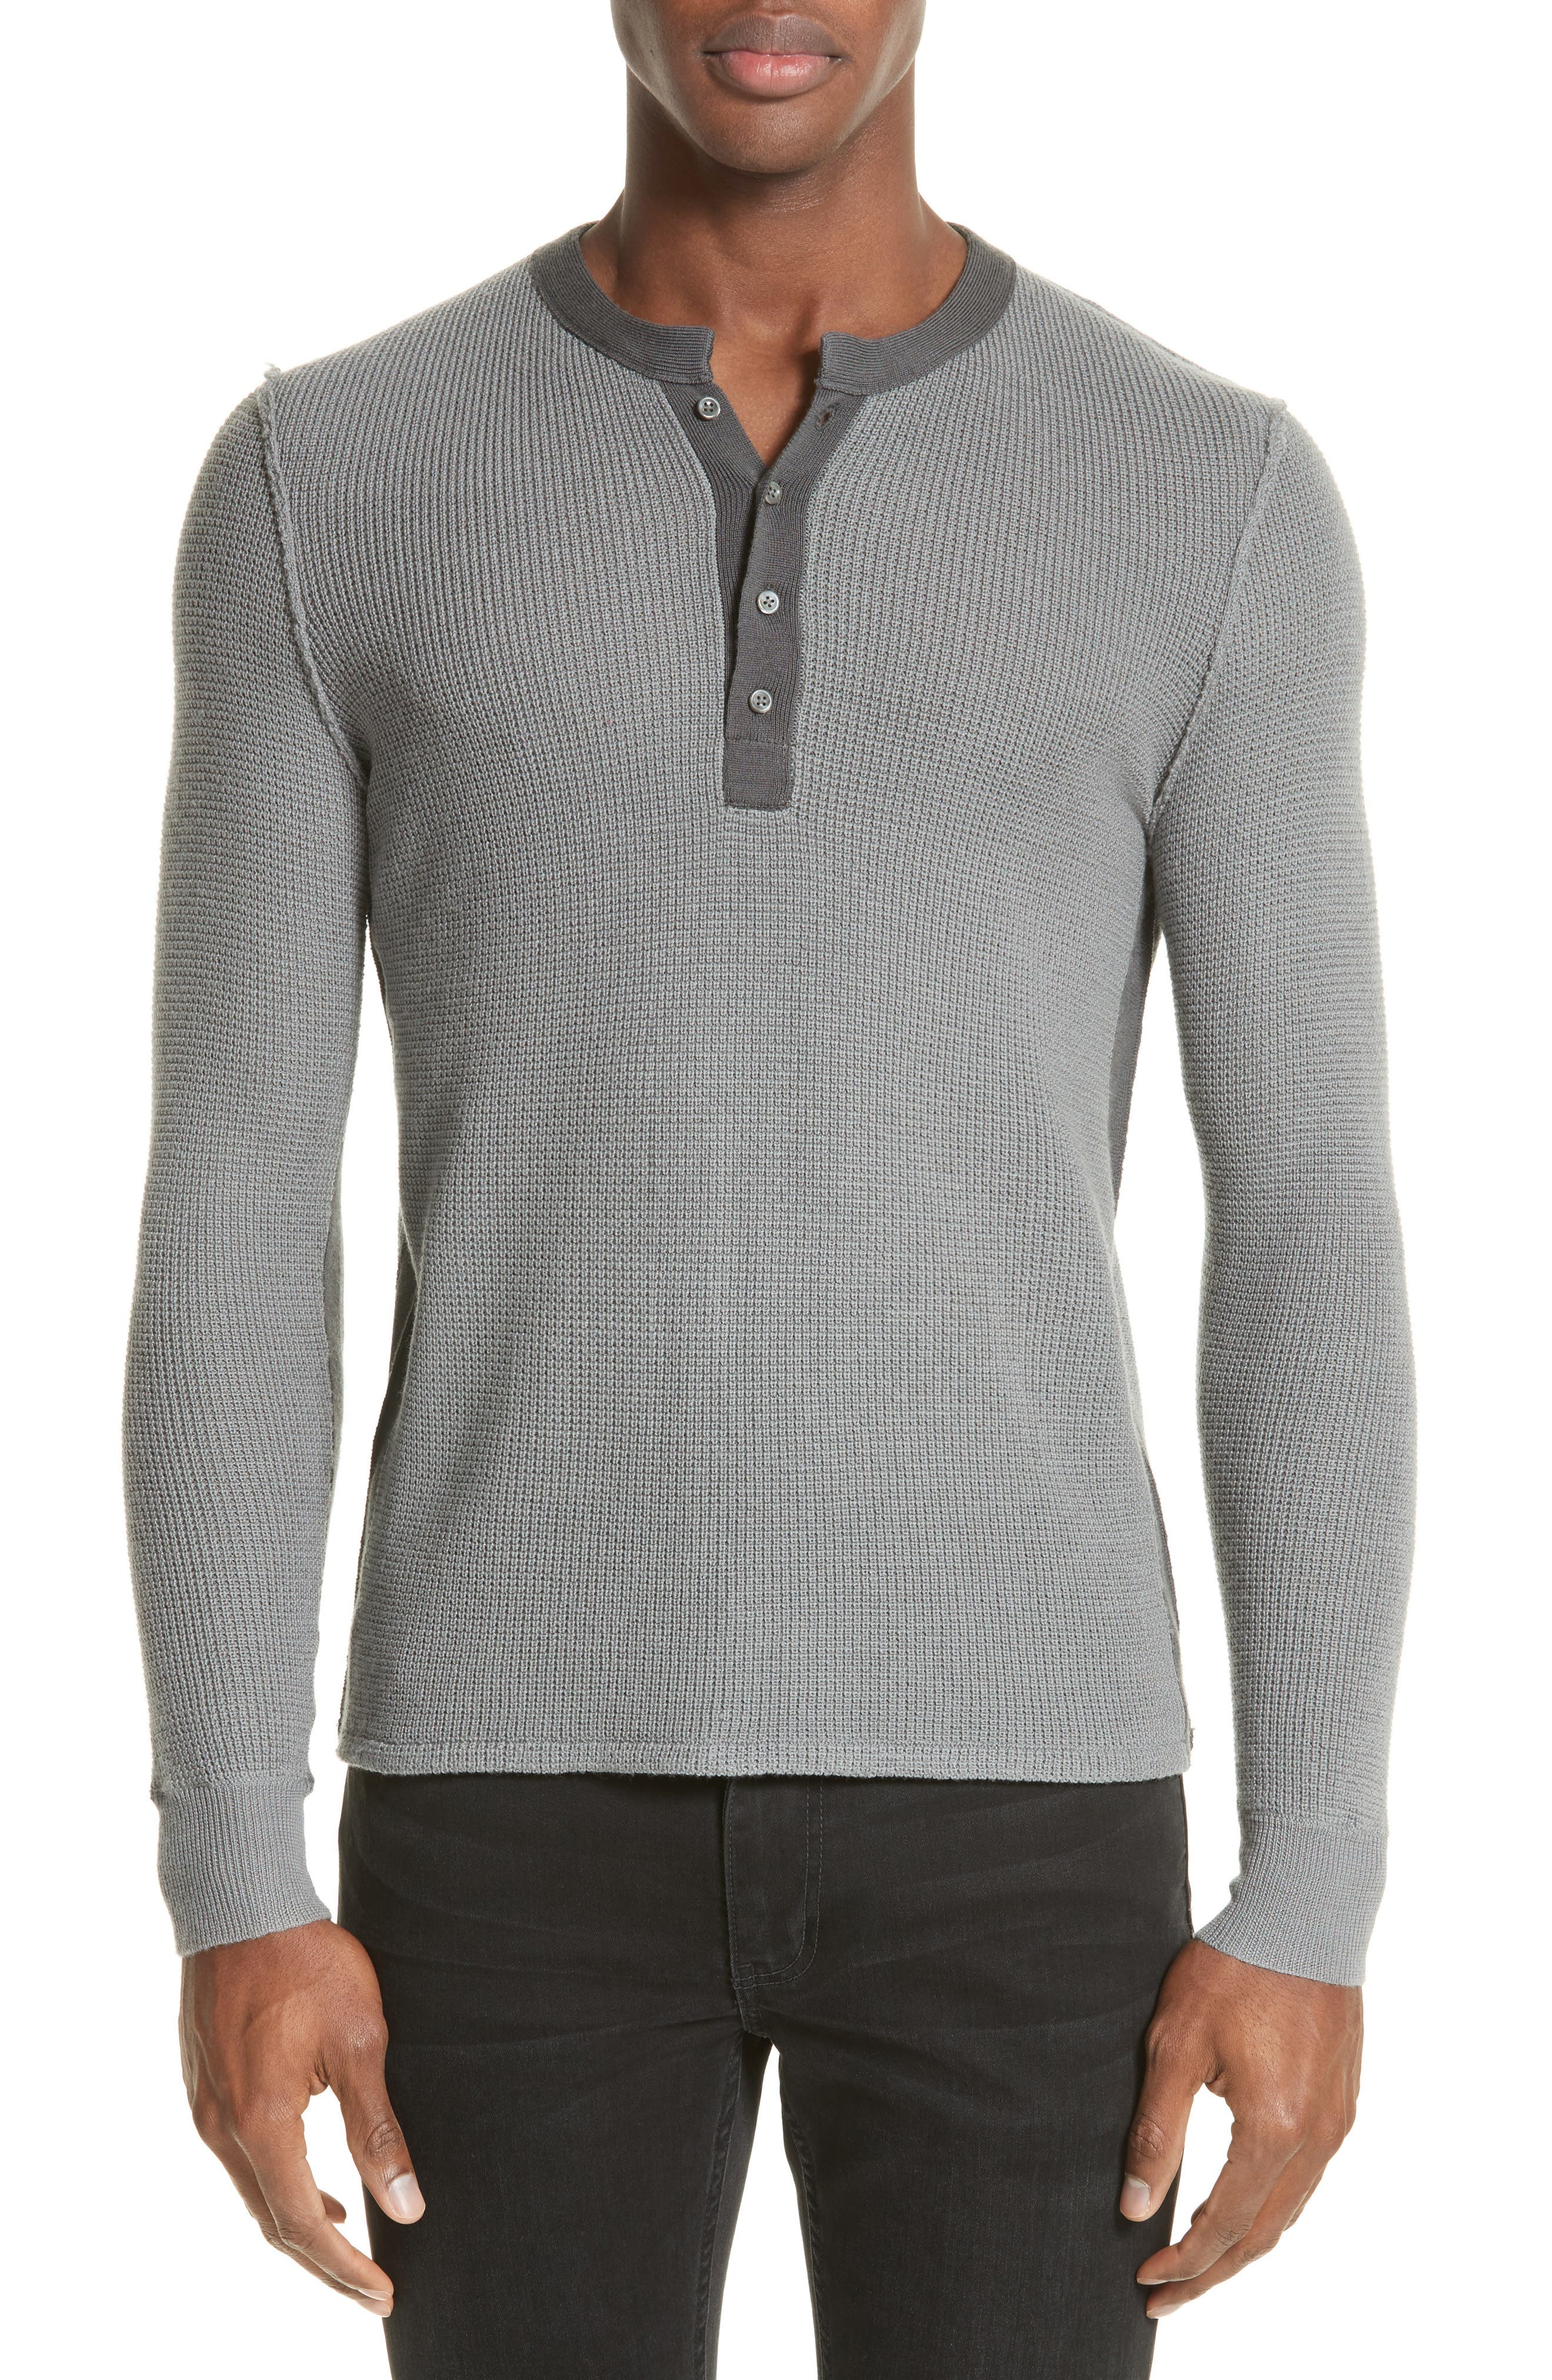 Zack Two-Tone Waffle Knit Wool Henley,                         Main,                         color, Cement/ Carbon